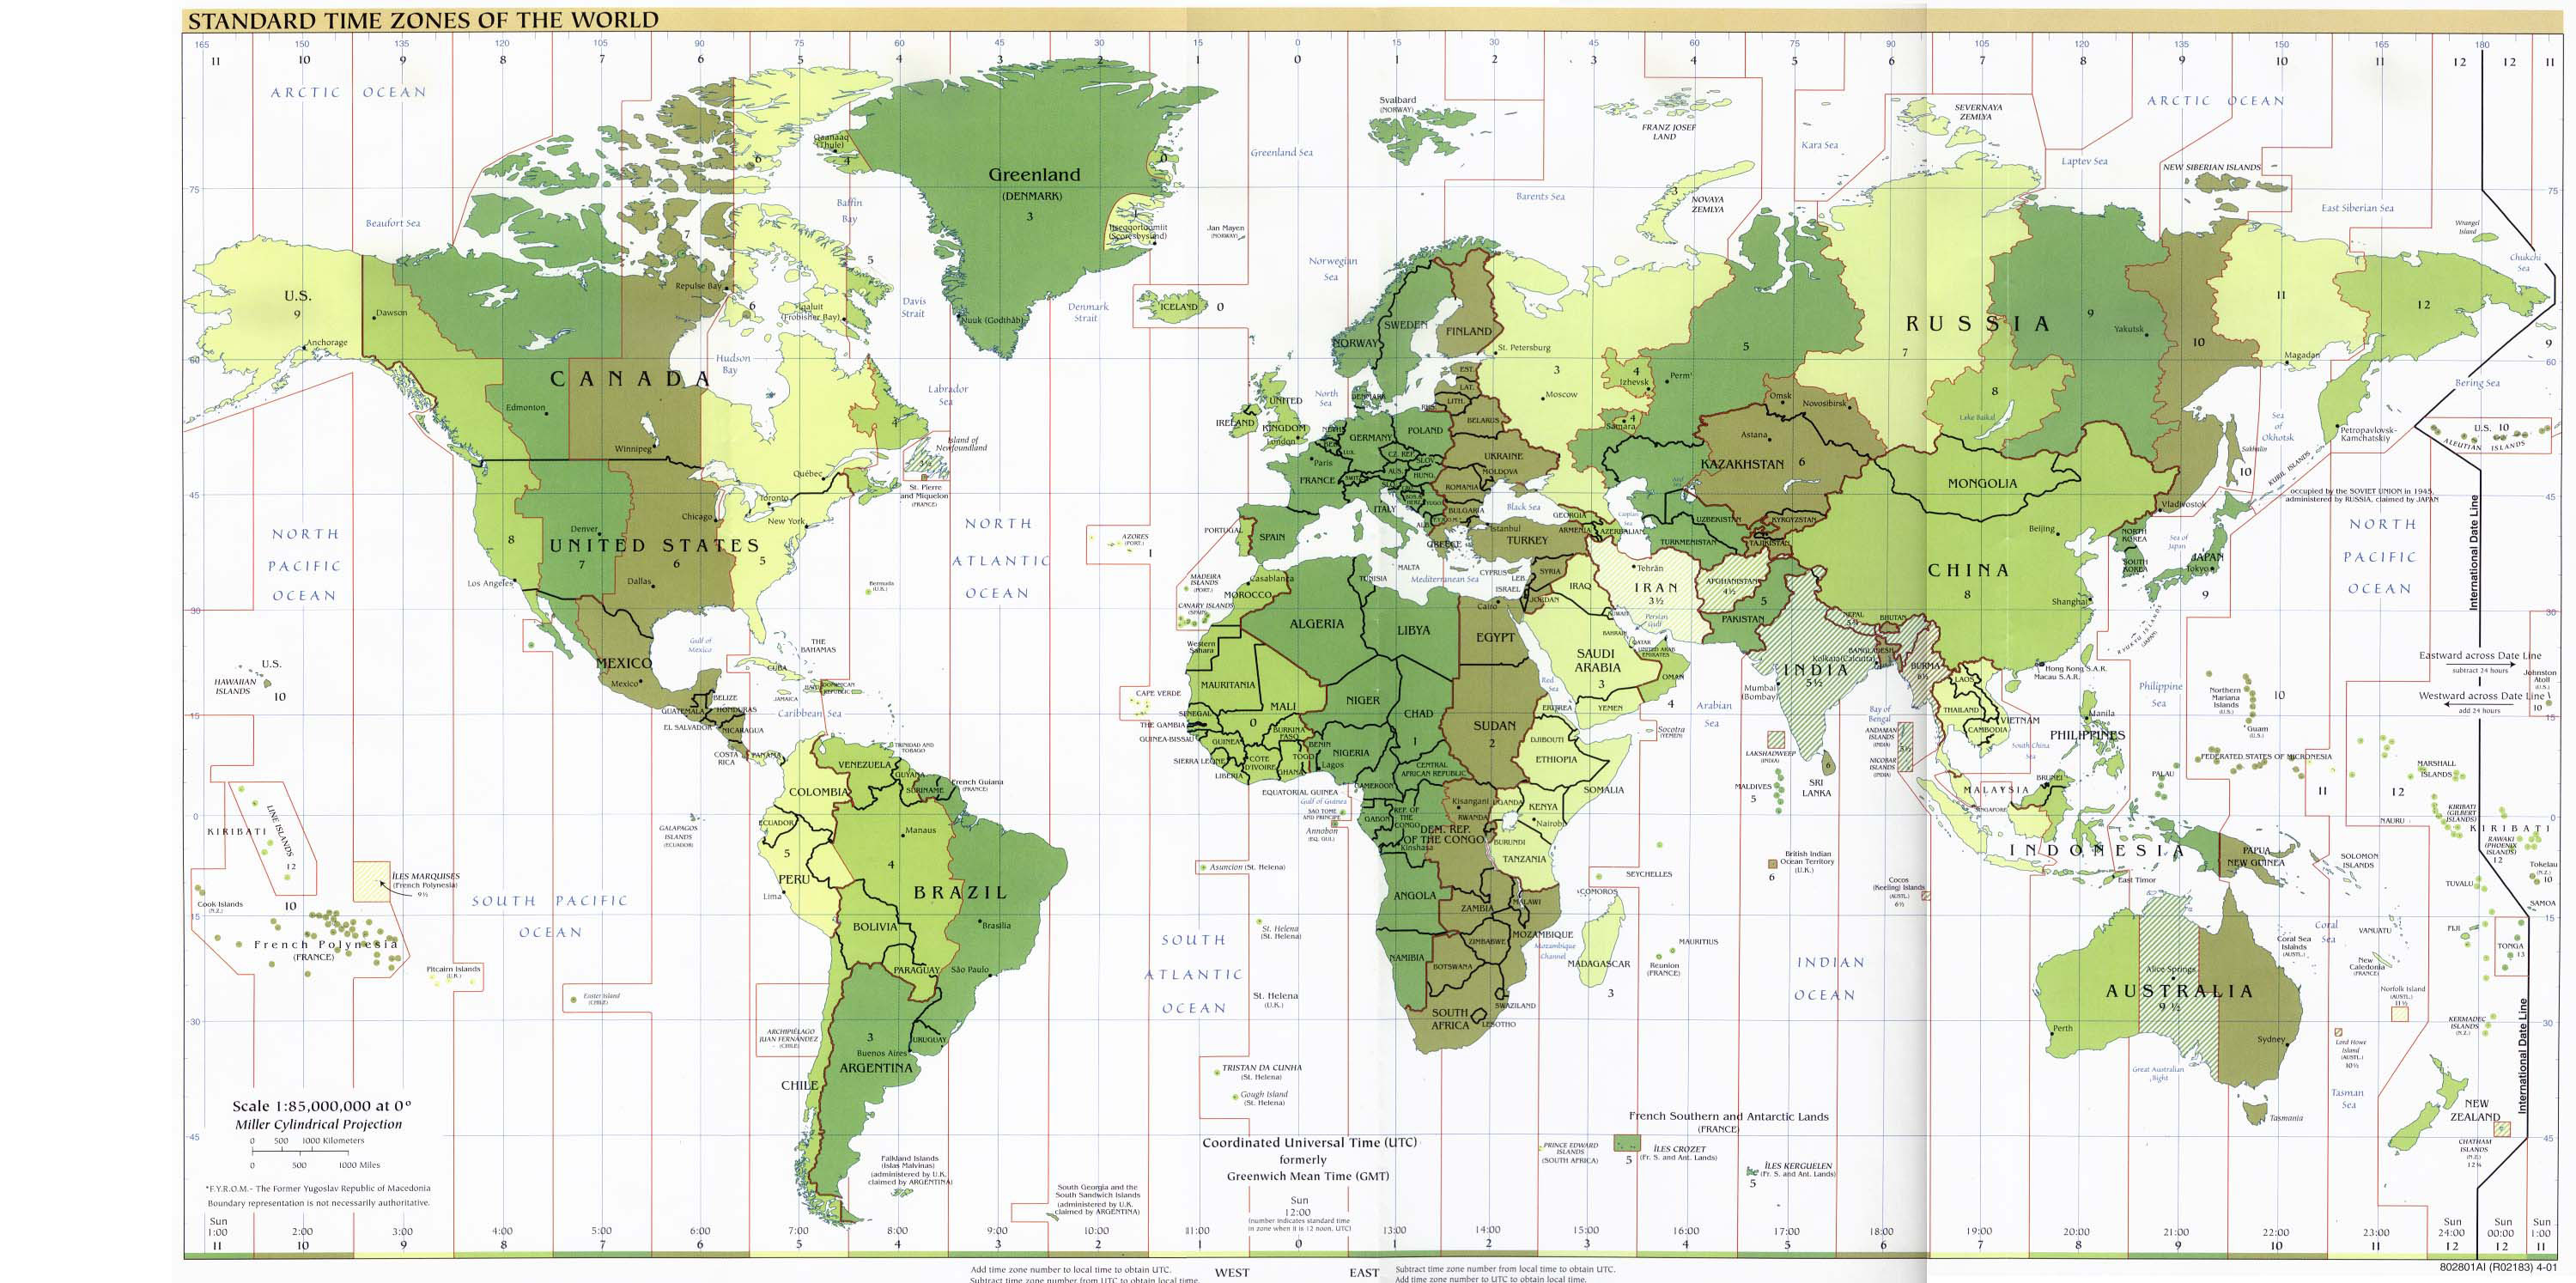 Detailed map of time zones of the world 2001 issue detailed time detailed map of time zones of the world 2001 issue detailed time zones world map 2001 gumiabroncs Image collections